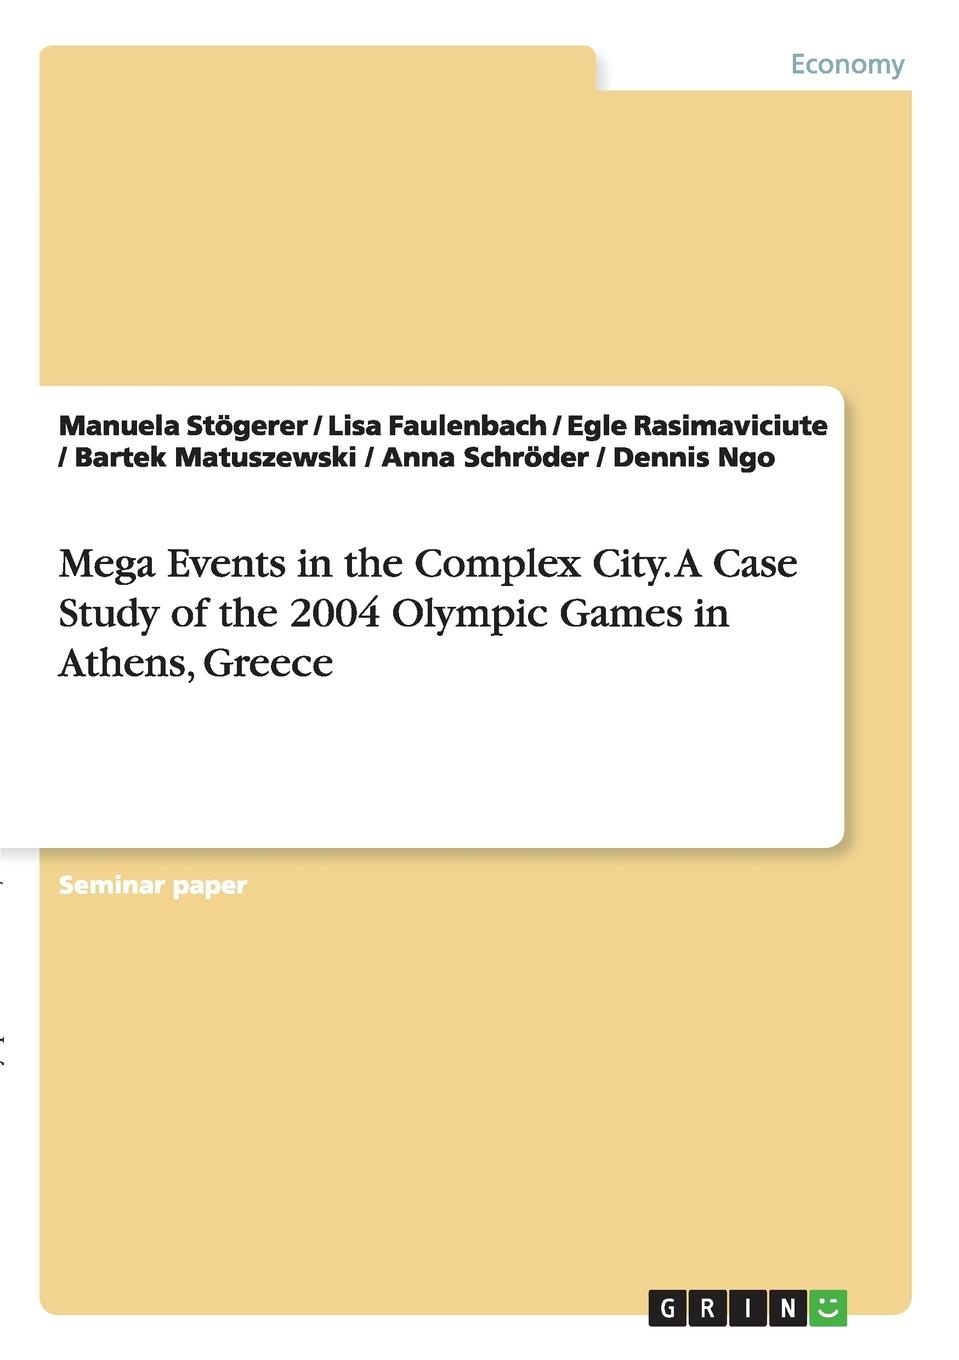 Manuela Stögerer, Lisa Faulenbach, Egle Rasimaviciute Mega Events in the Complex City.A Case Study of the 2004 Olympic Games in Athens, Greece malcolm kemp extreme events robust portfolio construction in the presence of fat tails isbn 9780470976791